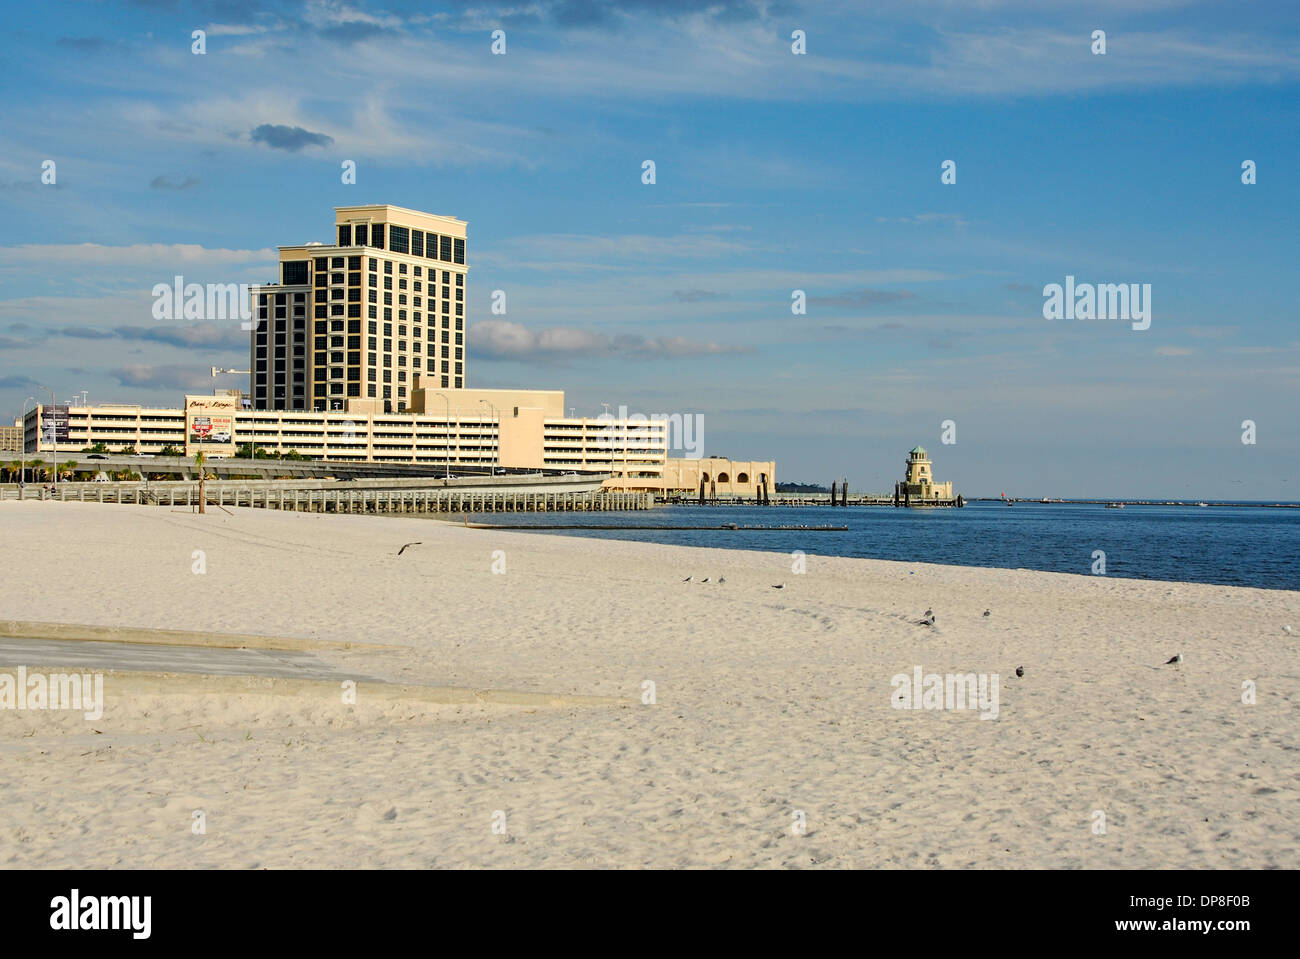 Hotels On The Beach In Gulfport Biloxi Ms